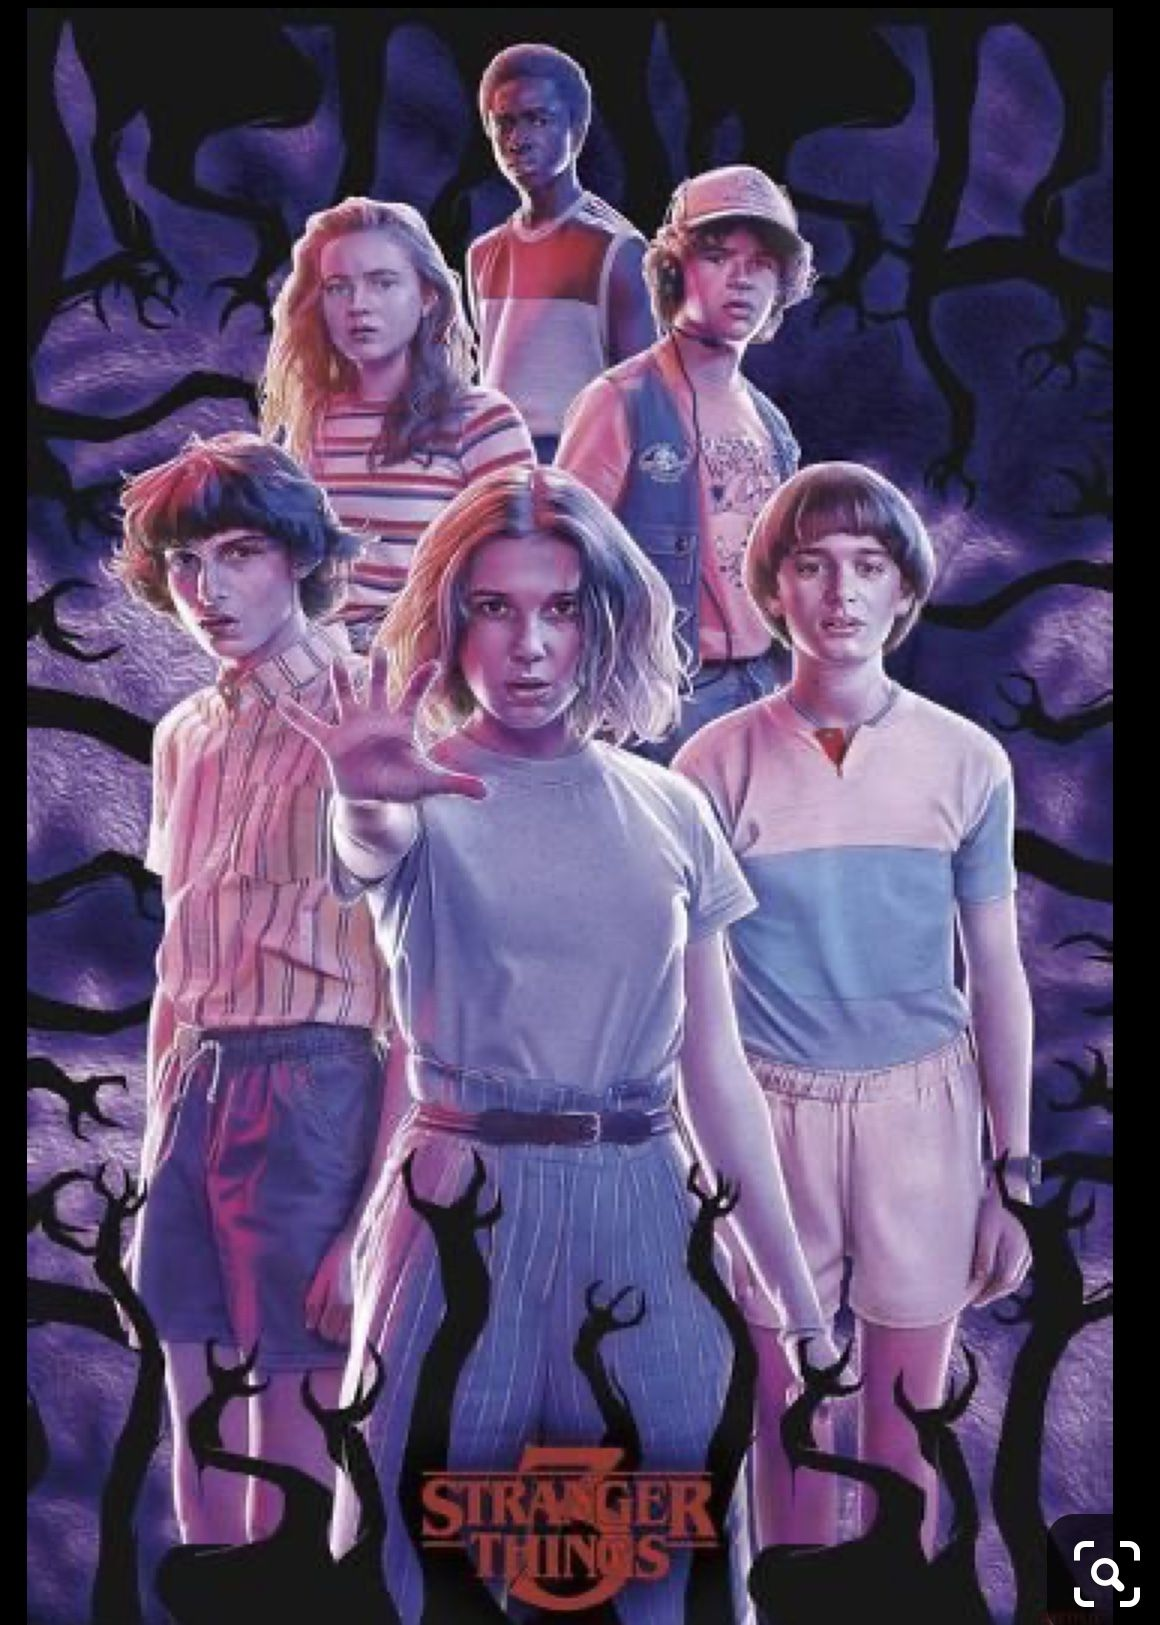 Pin by Eliana Campos on Stranger Things in 2020 Stranger